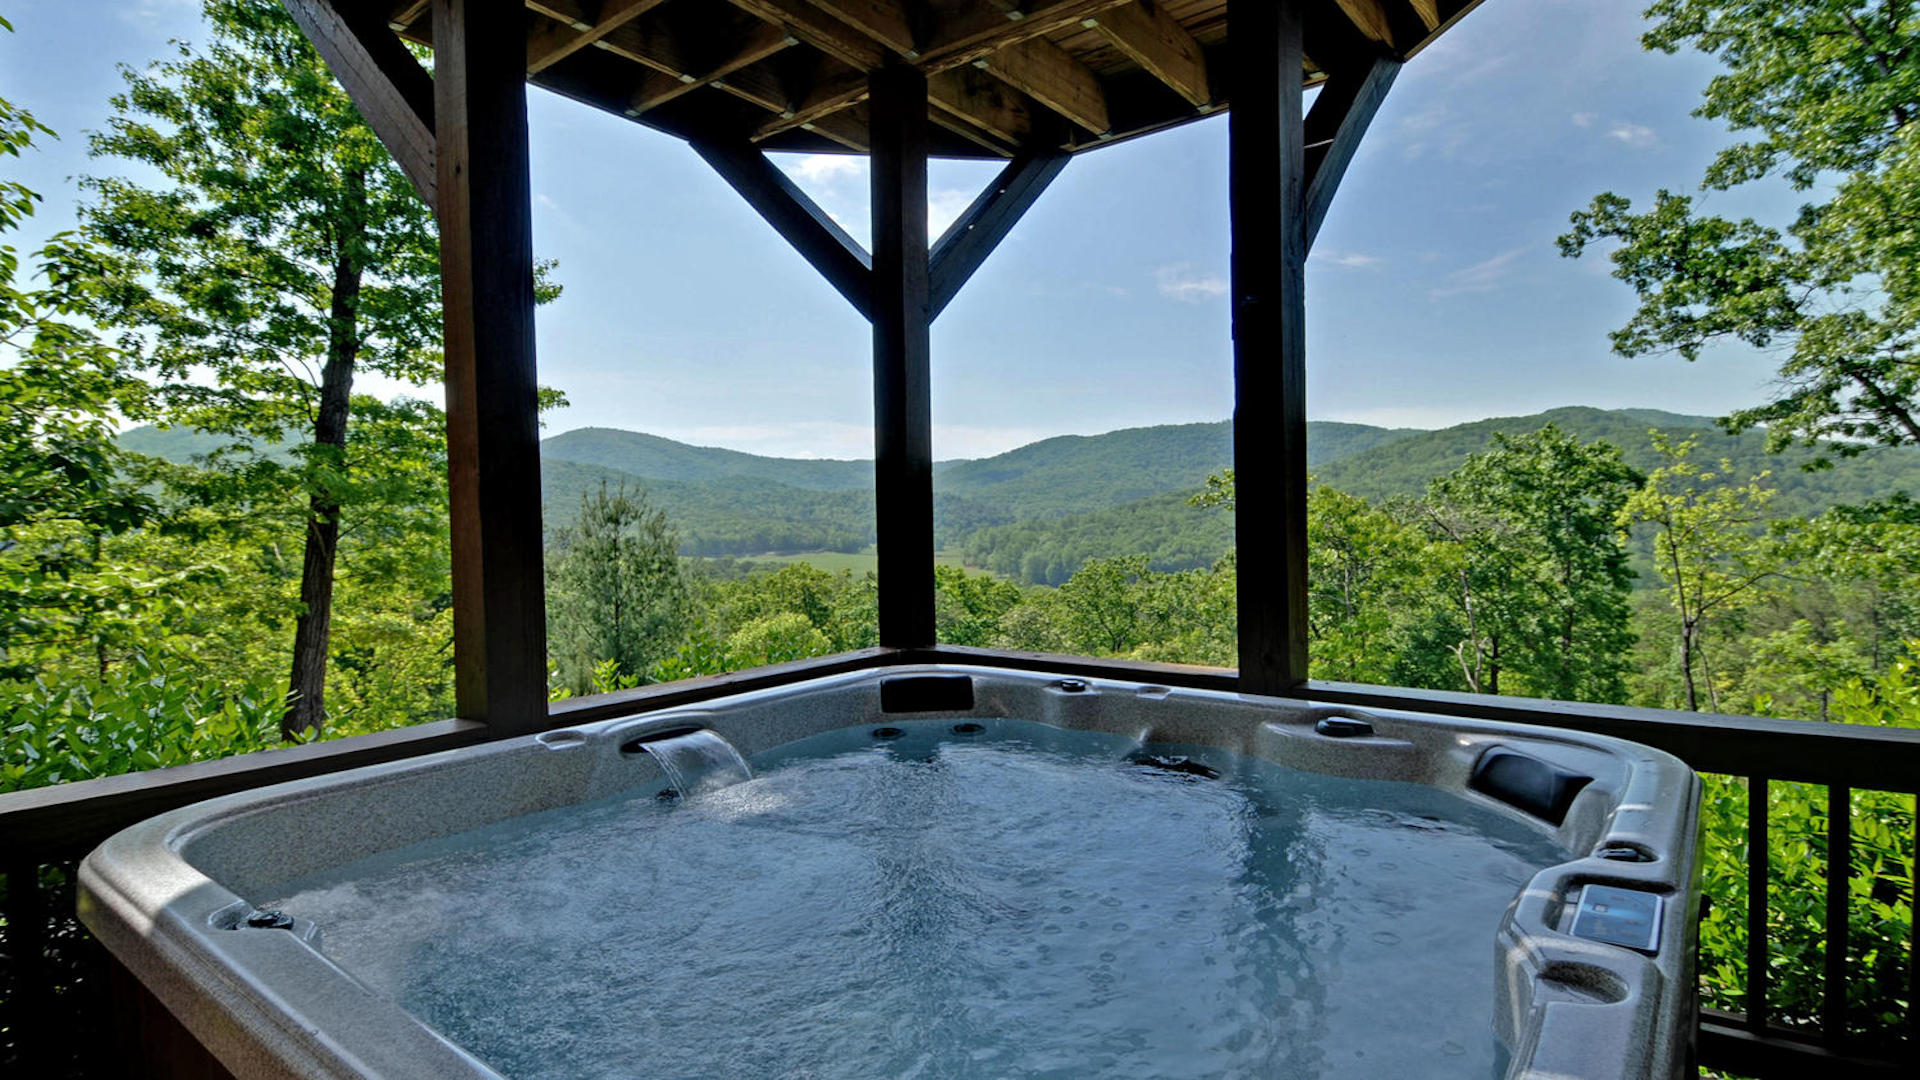 Big Sky View Rental Cabin - Blue Ridge, GA